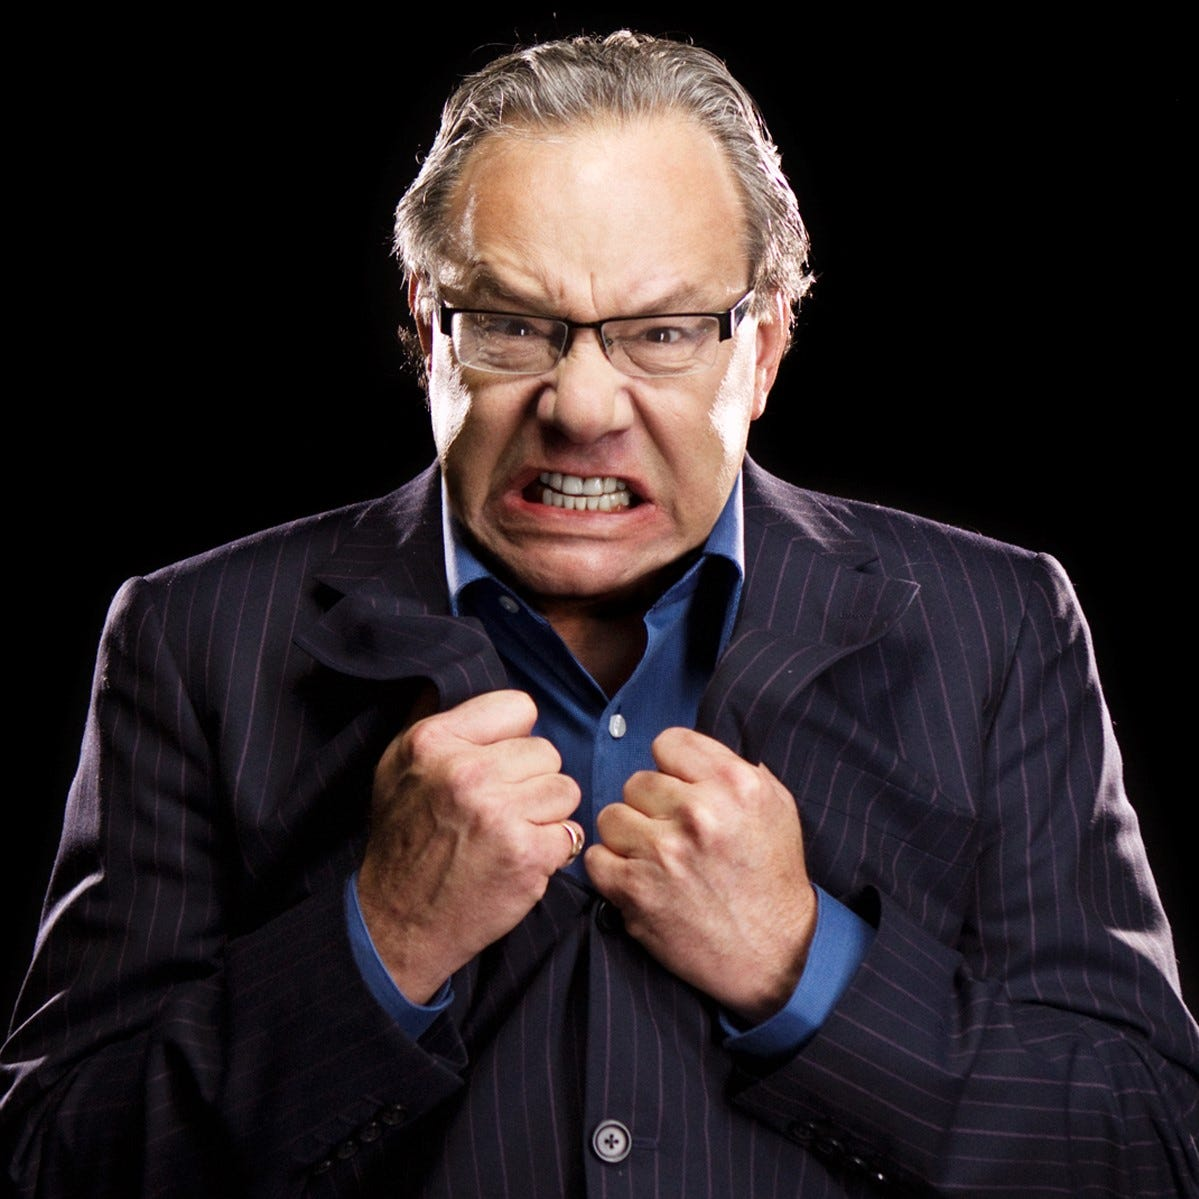 Lewis Black's 'The Joke's On Us' tour comes to...